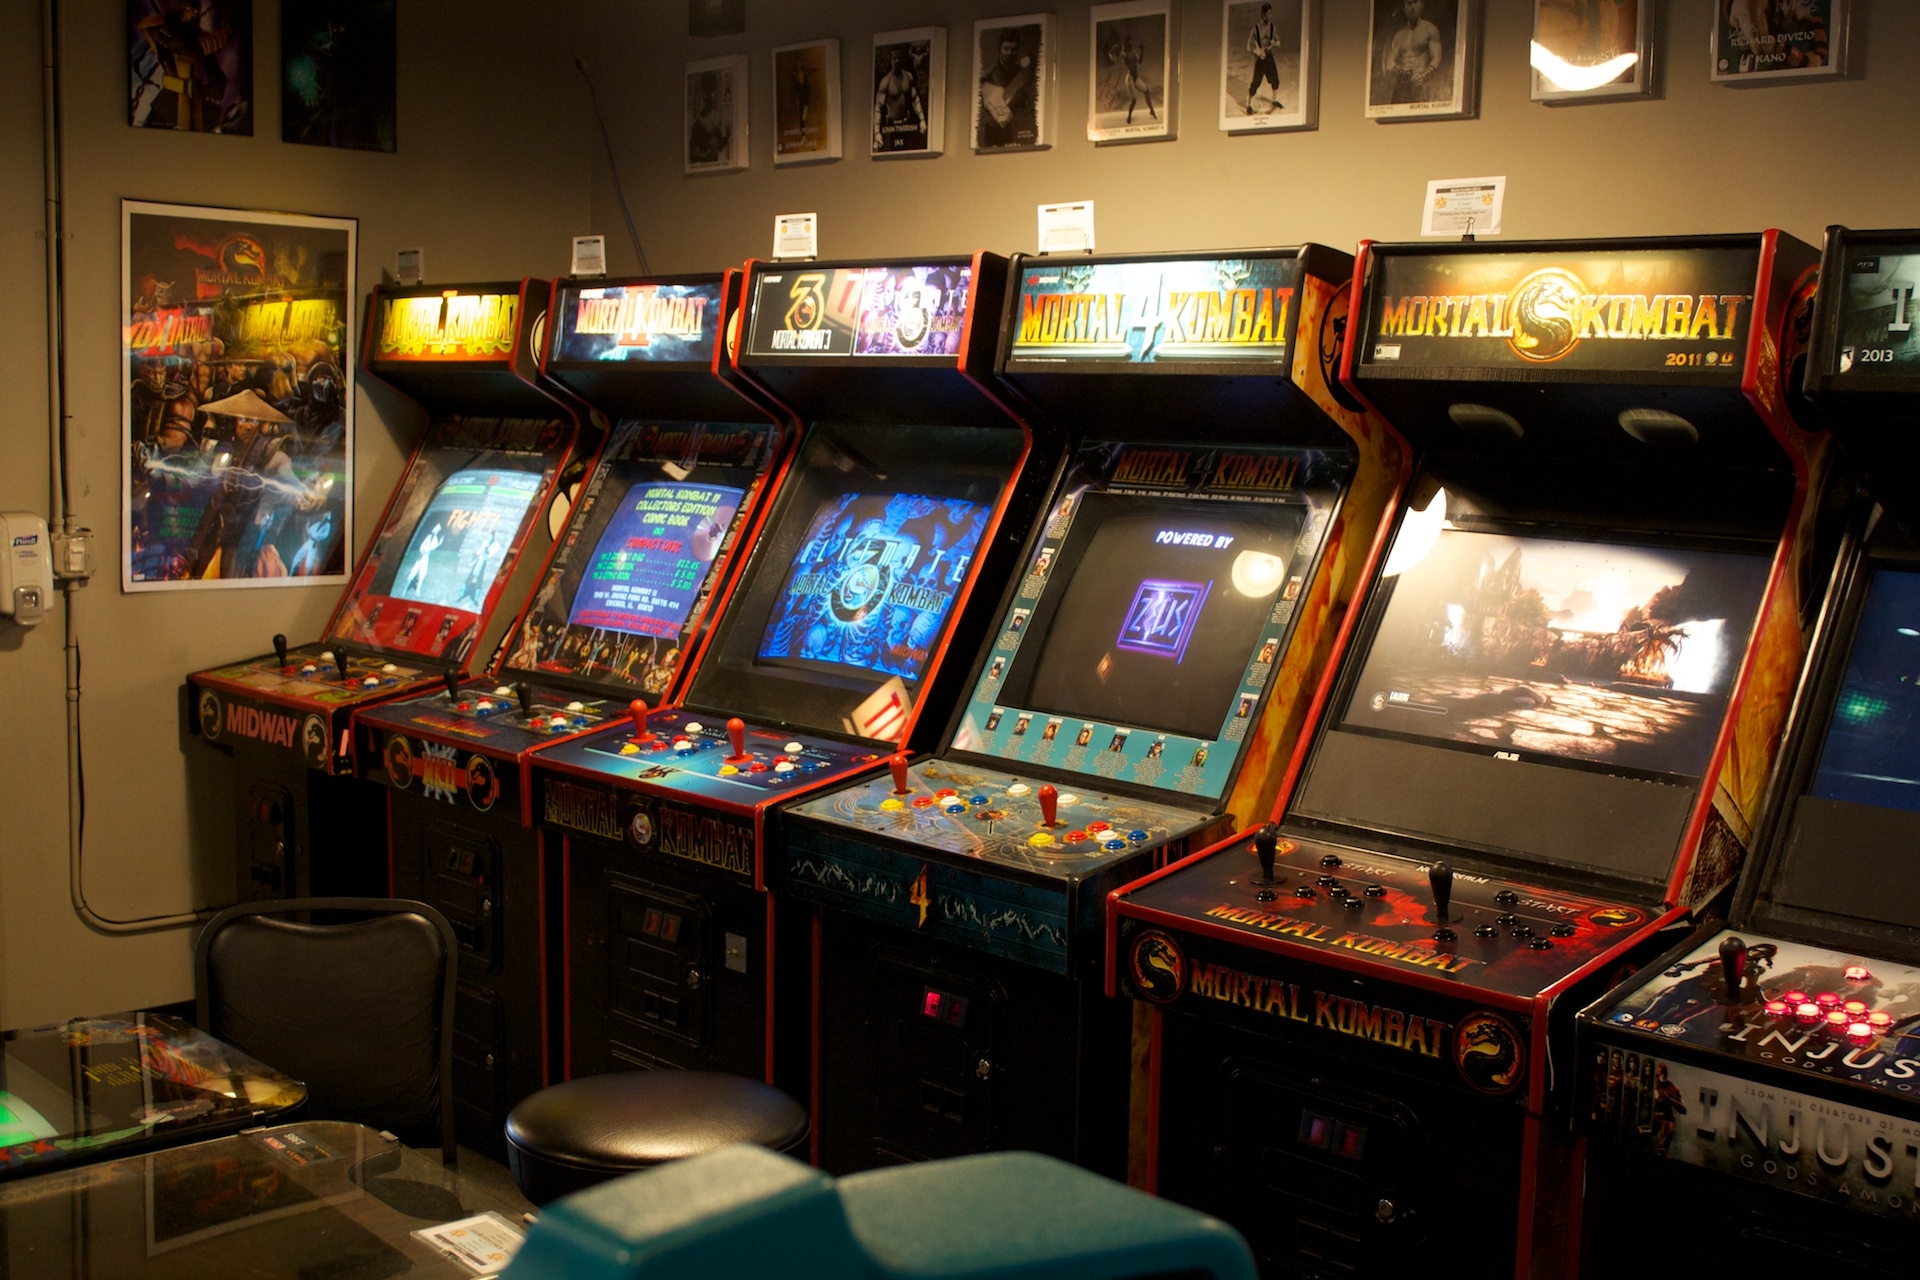 All White Bedrooms A Visit To Galloping Ghost The Largest Video Game Arcade